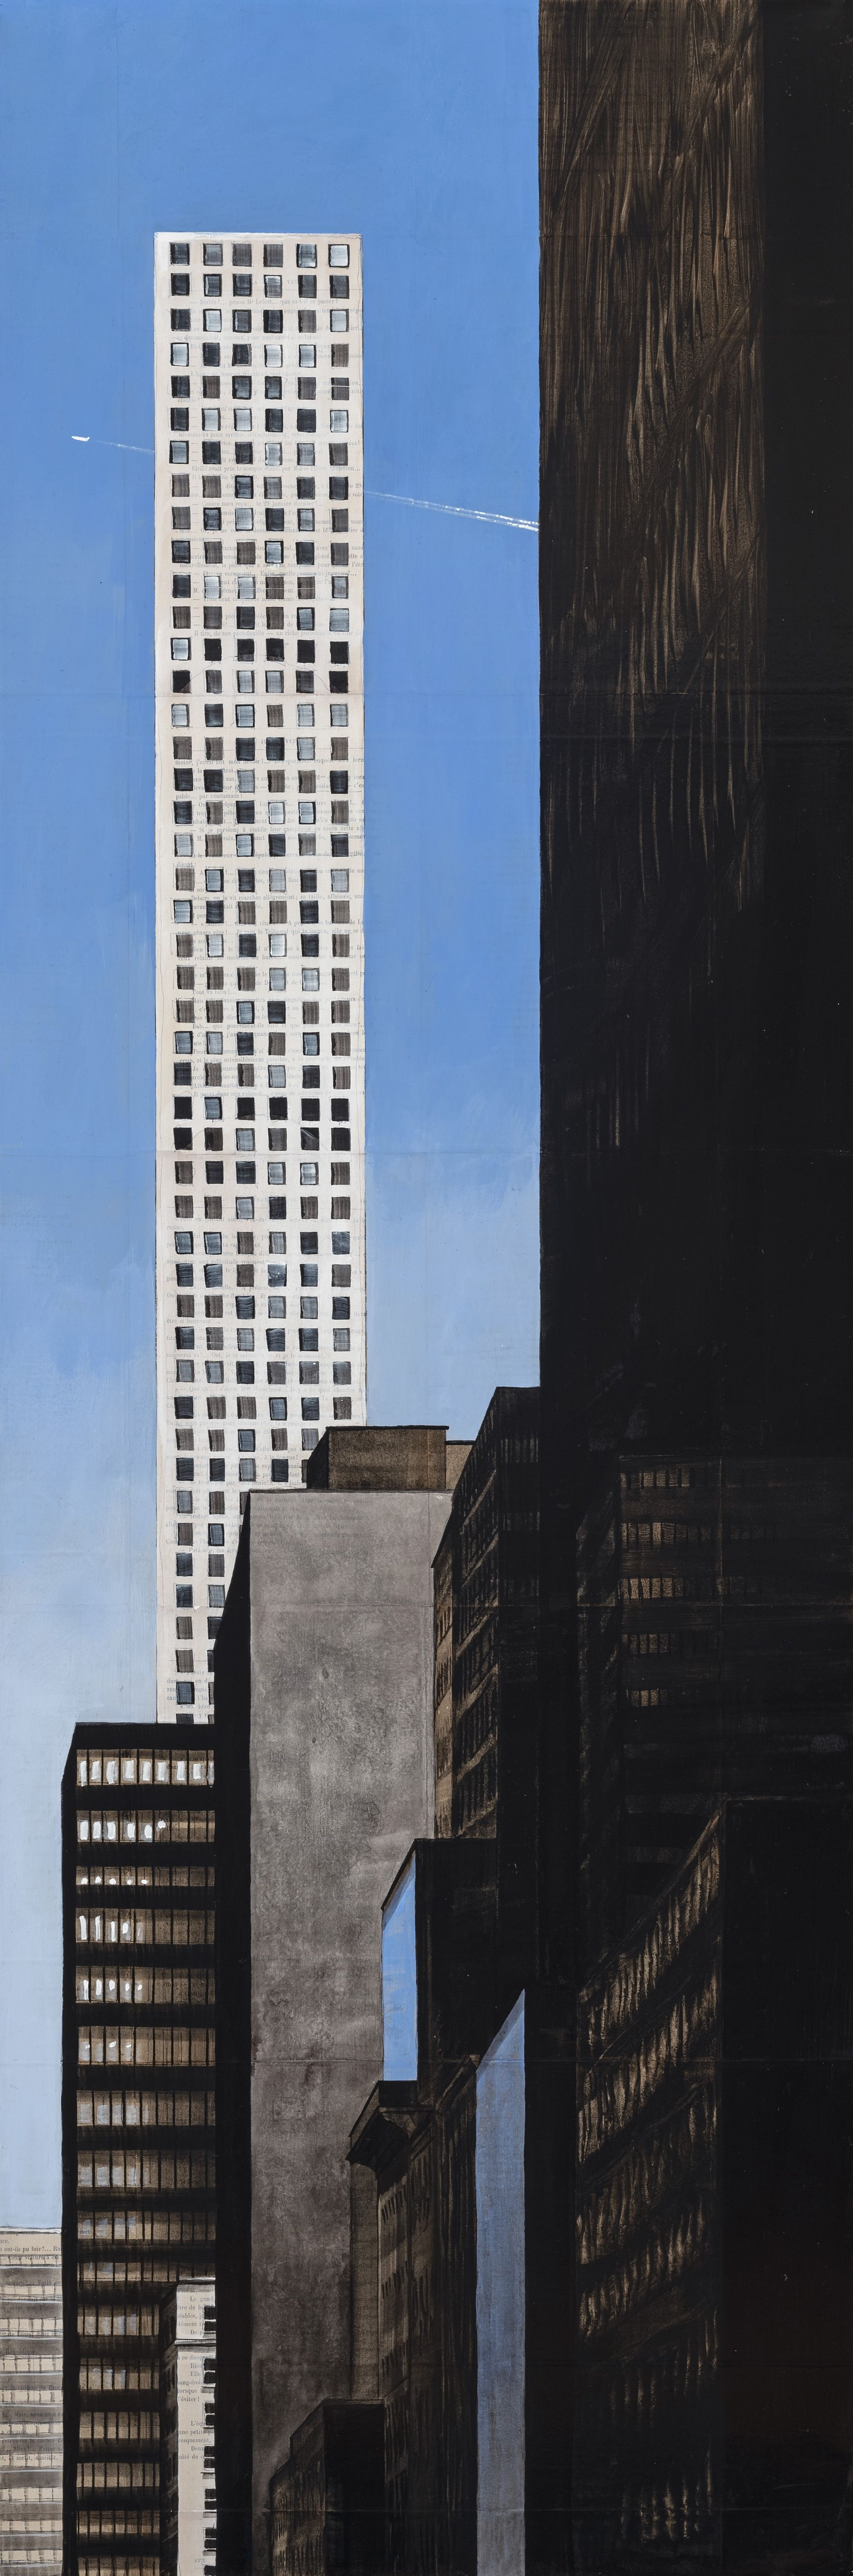 57th and Broadway,Guillaume Chansarel,Peinture